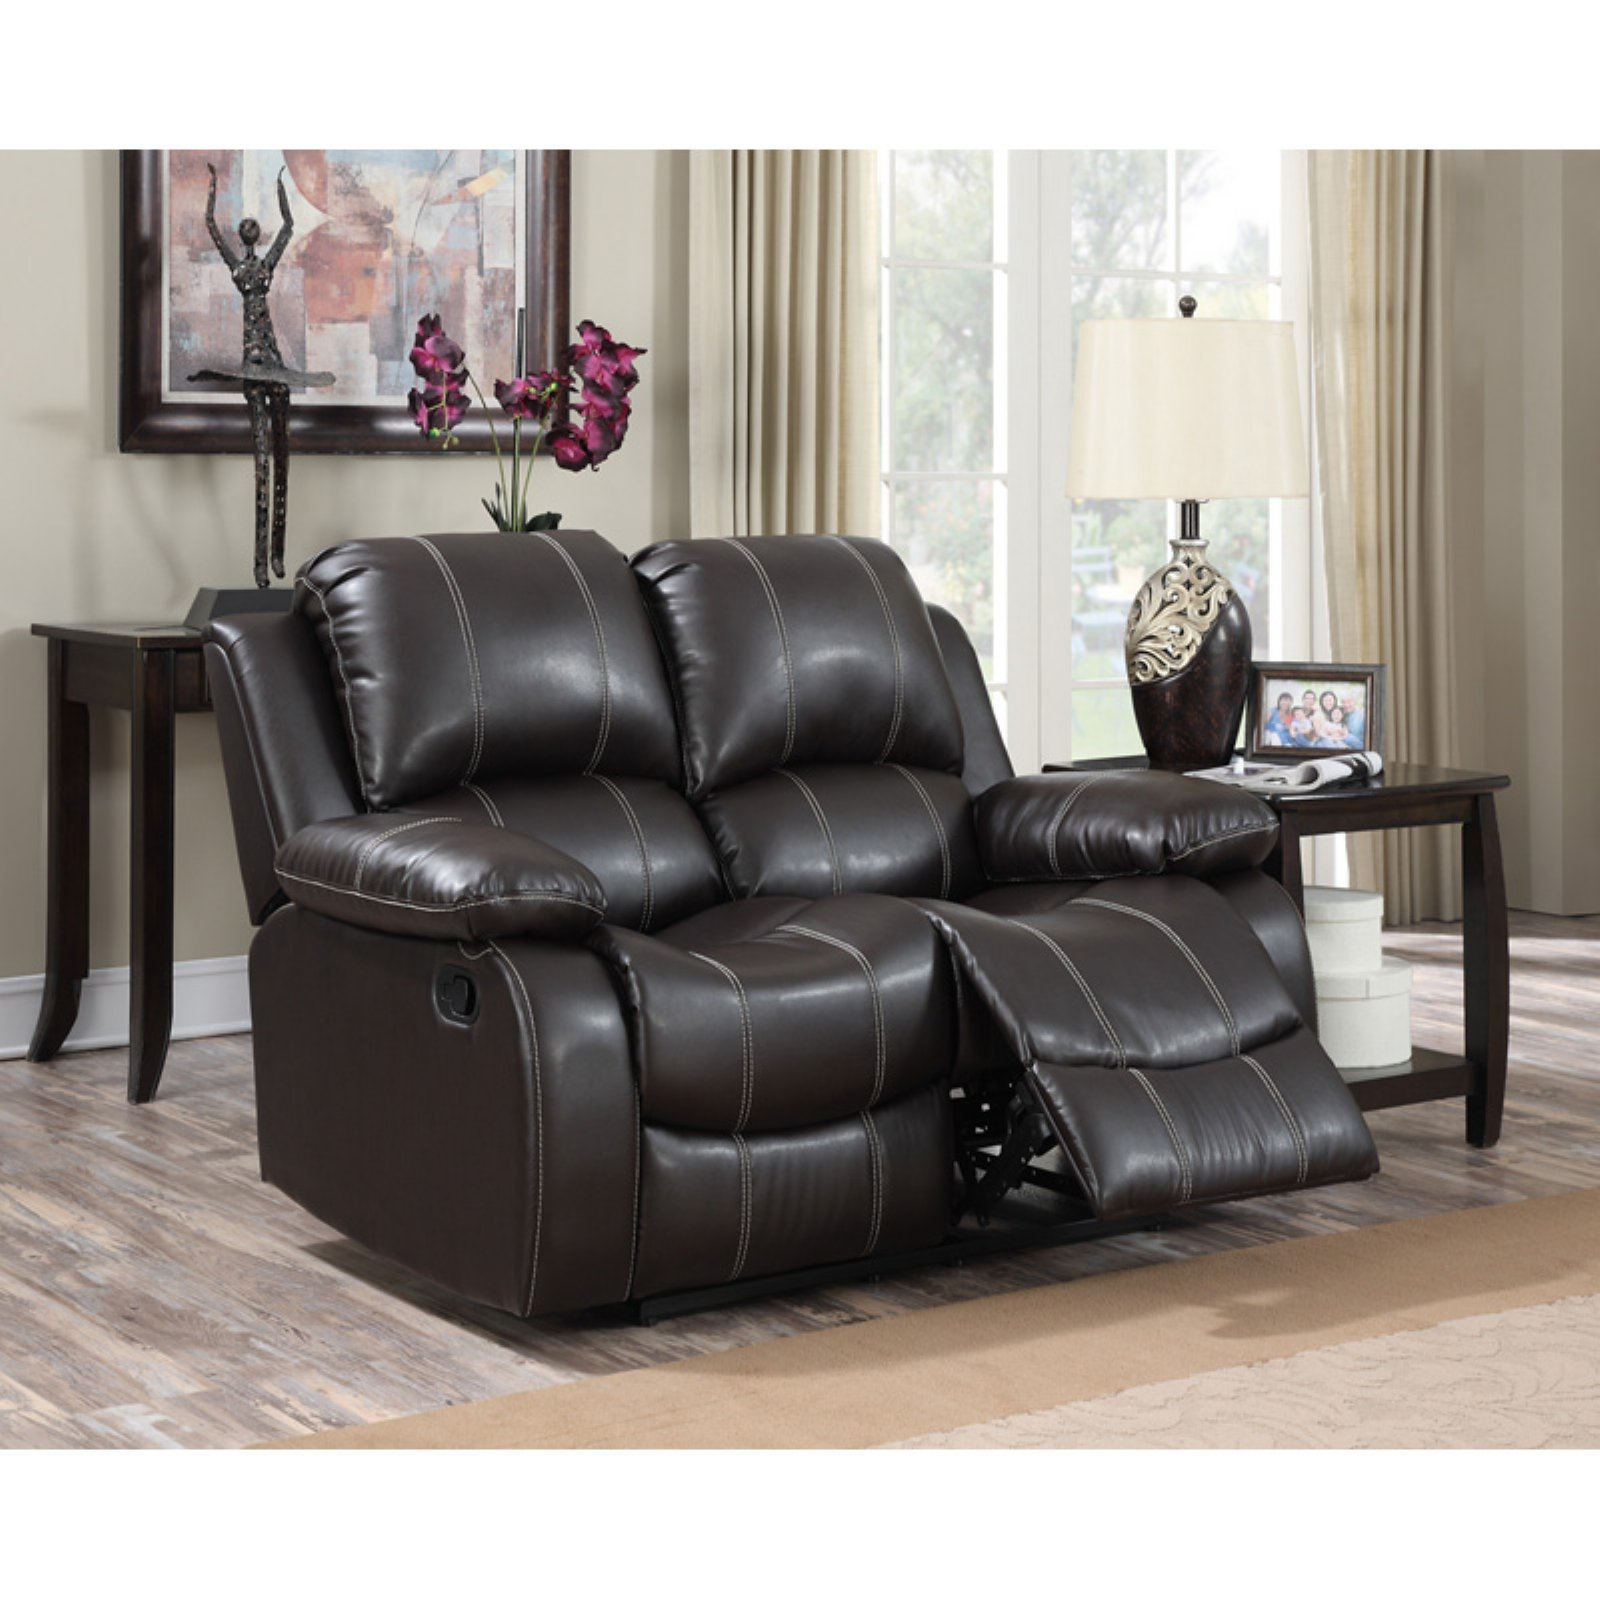 Miraculous Gordon Motion Faux Leather 2 Seat Double Recliner Loveseat Machost Co Dining Chair Design Ideas Machostcouk